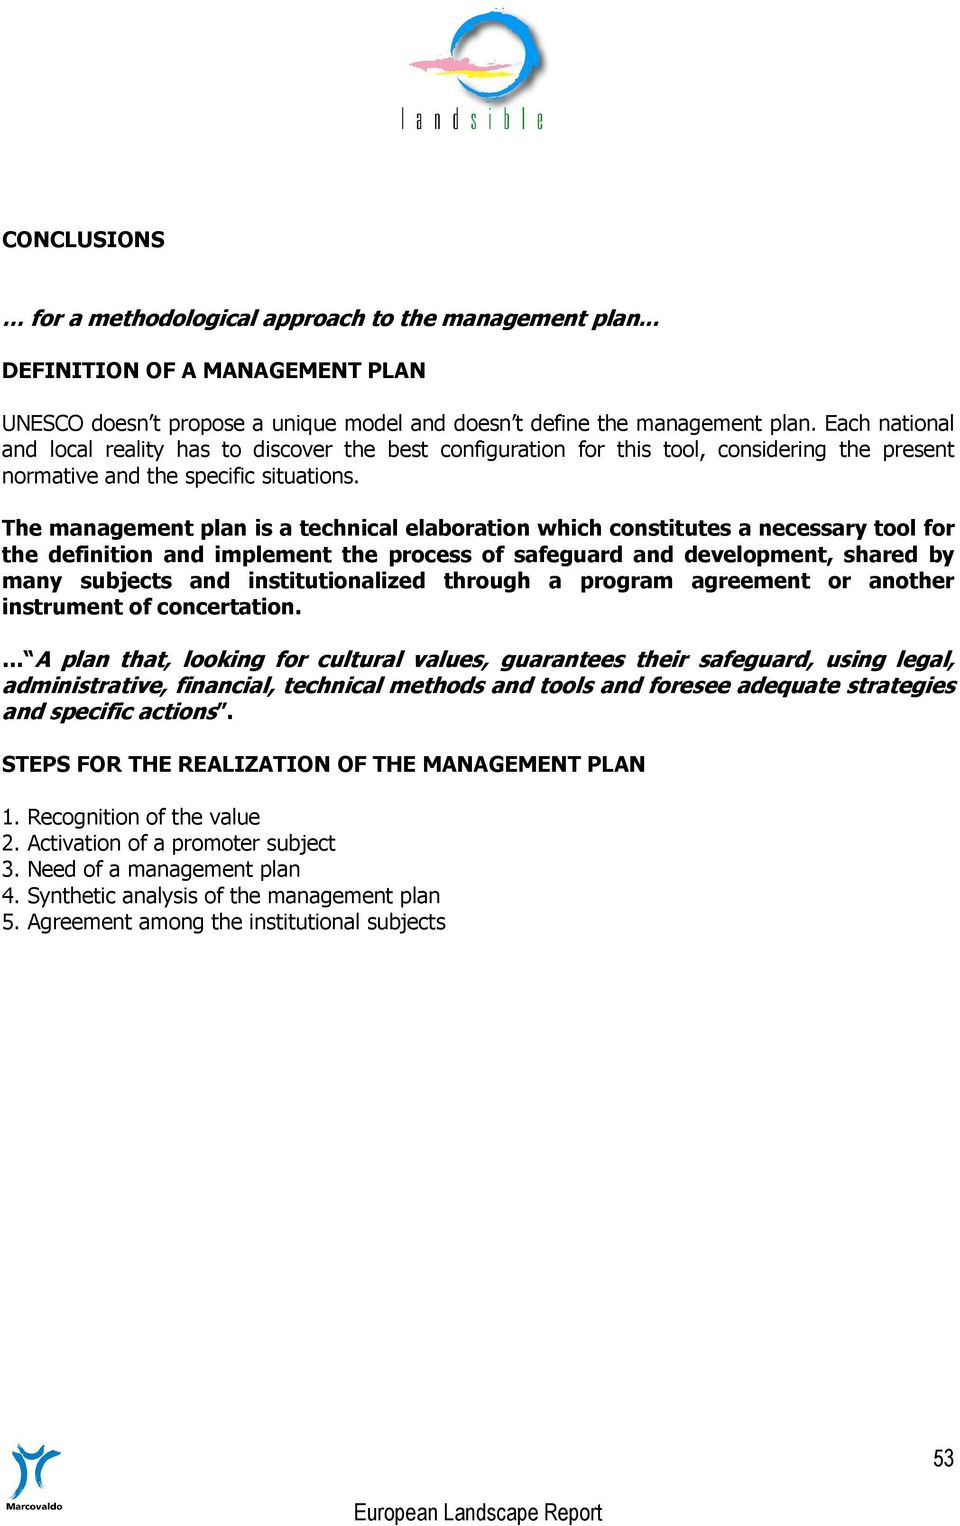 The management plan is a technical elaboration which constitutes a necessary tool for the definition and implement the process of safeguard and development, shared by many subjects and